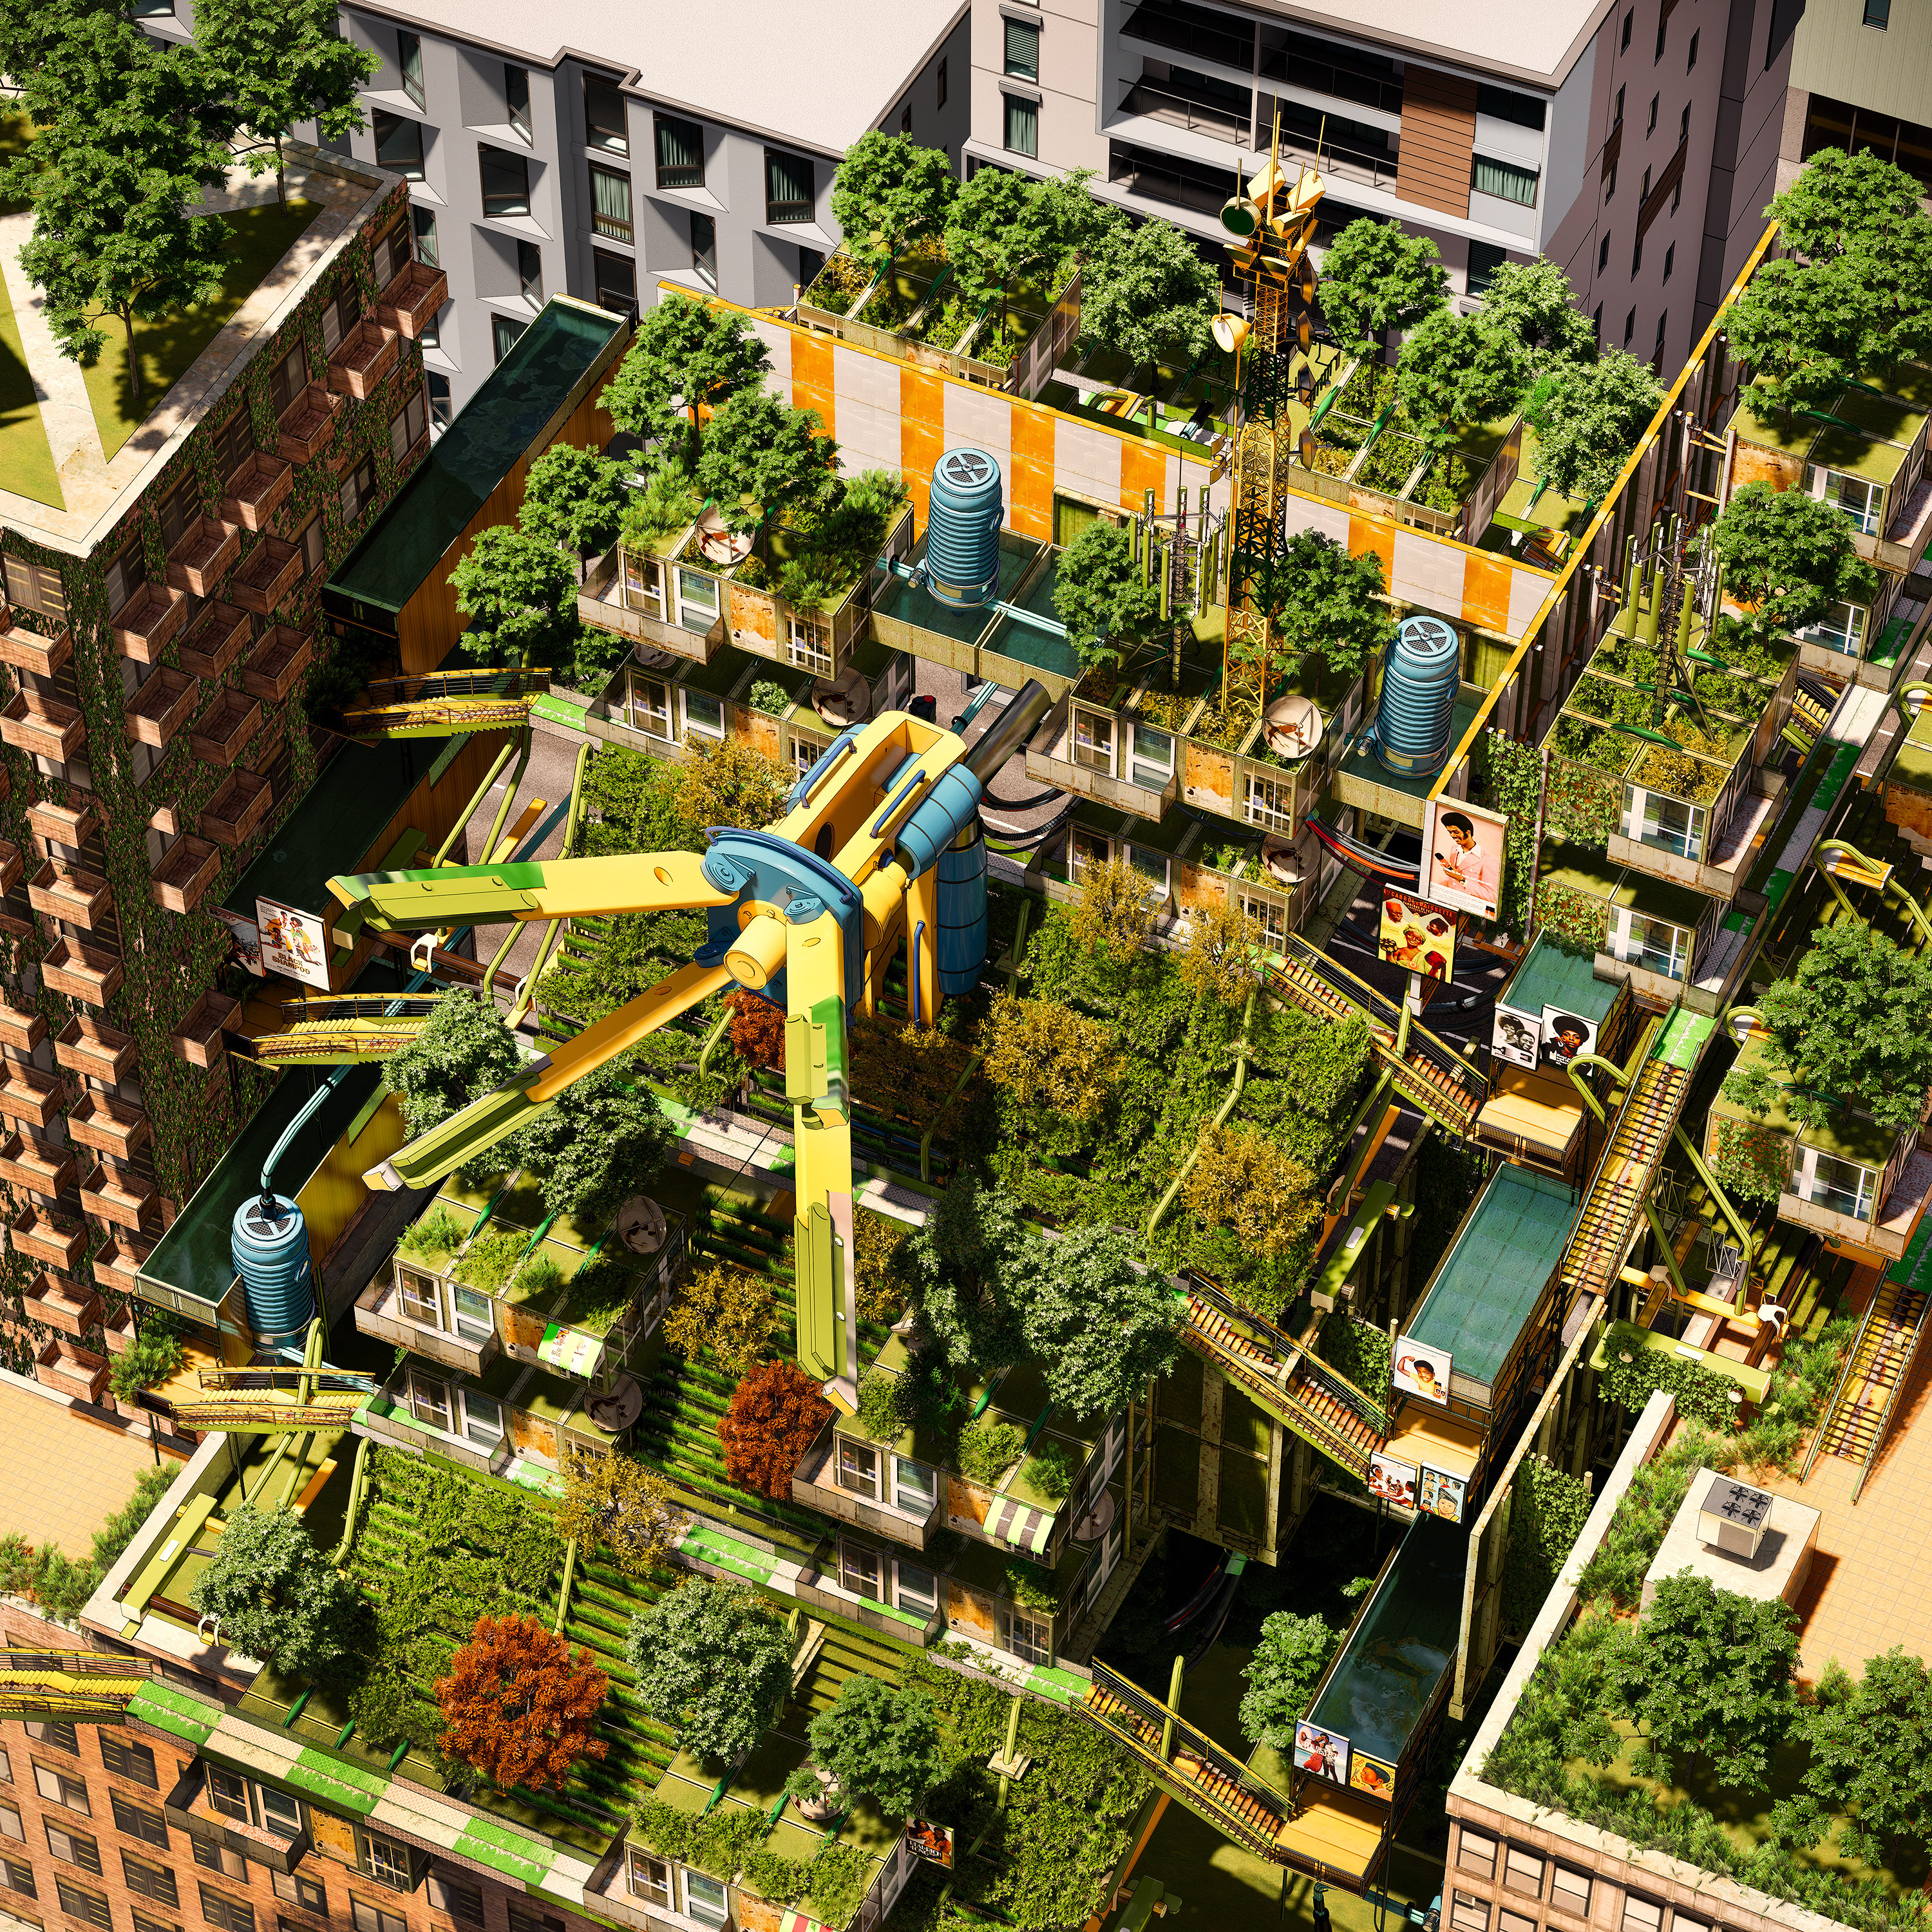 A rendering of an aerial view of apartment buildings with a futuristic garden in the courtyard